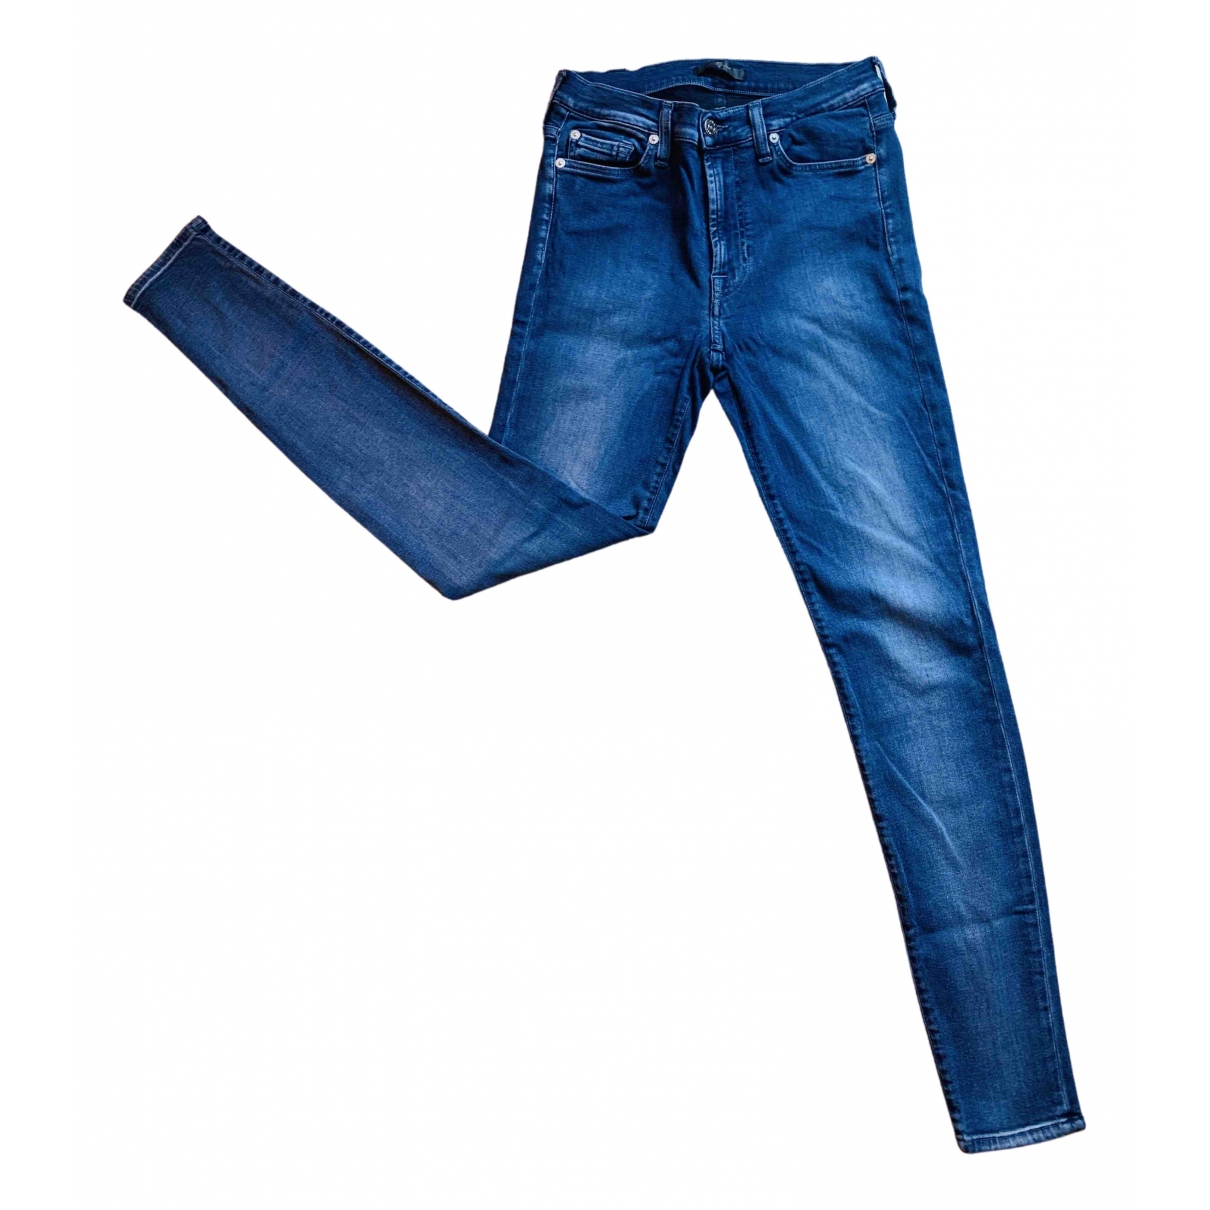 7 For All Mankind N Blue Cotton - elasthane Jeans for Women 27 US